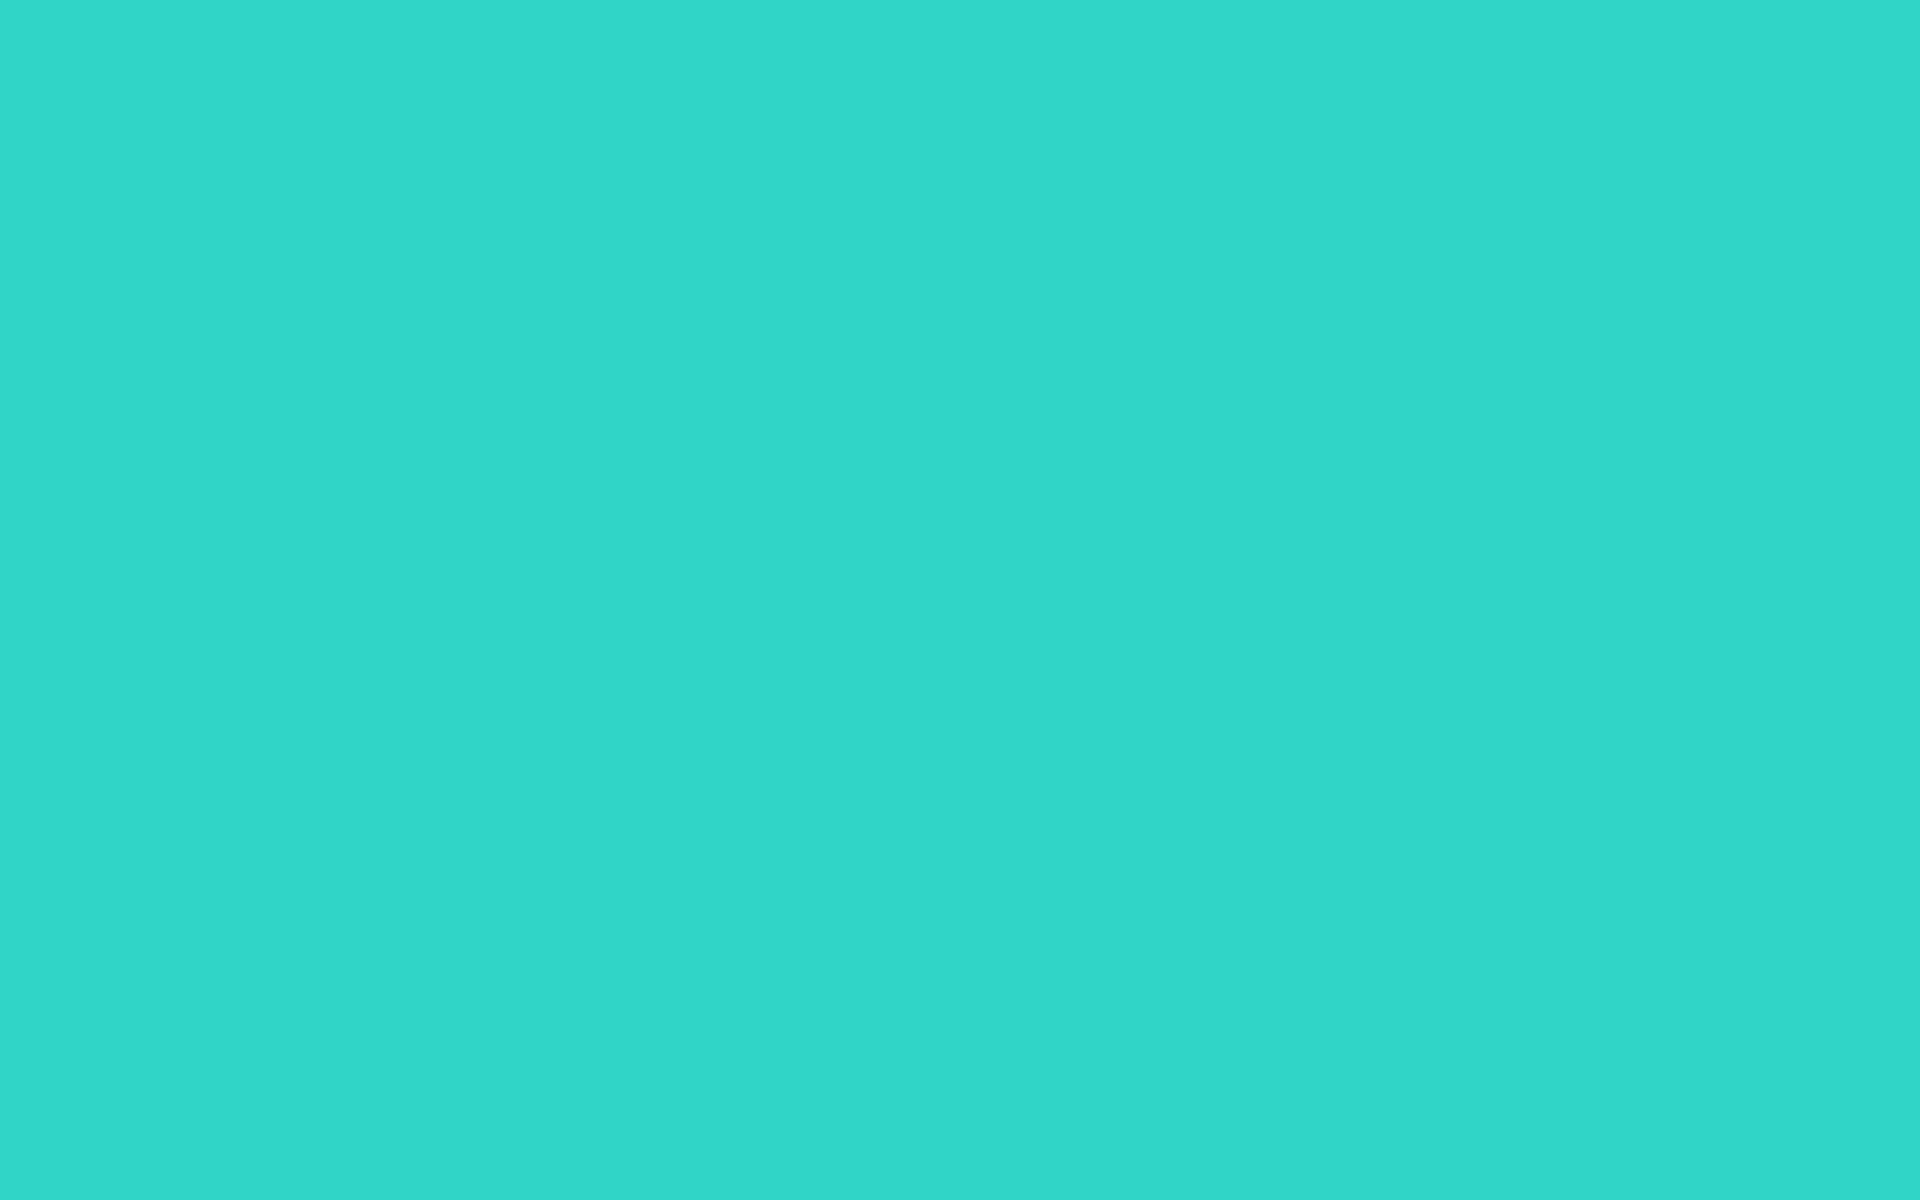 1920x1200 Turquoise Solid Color Background